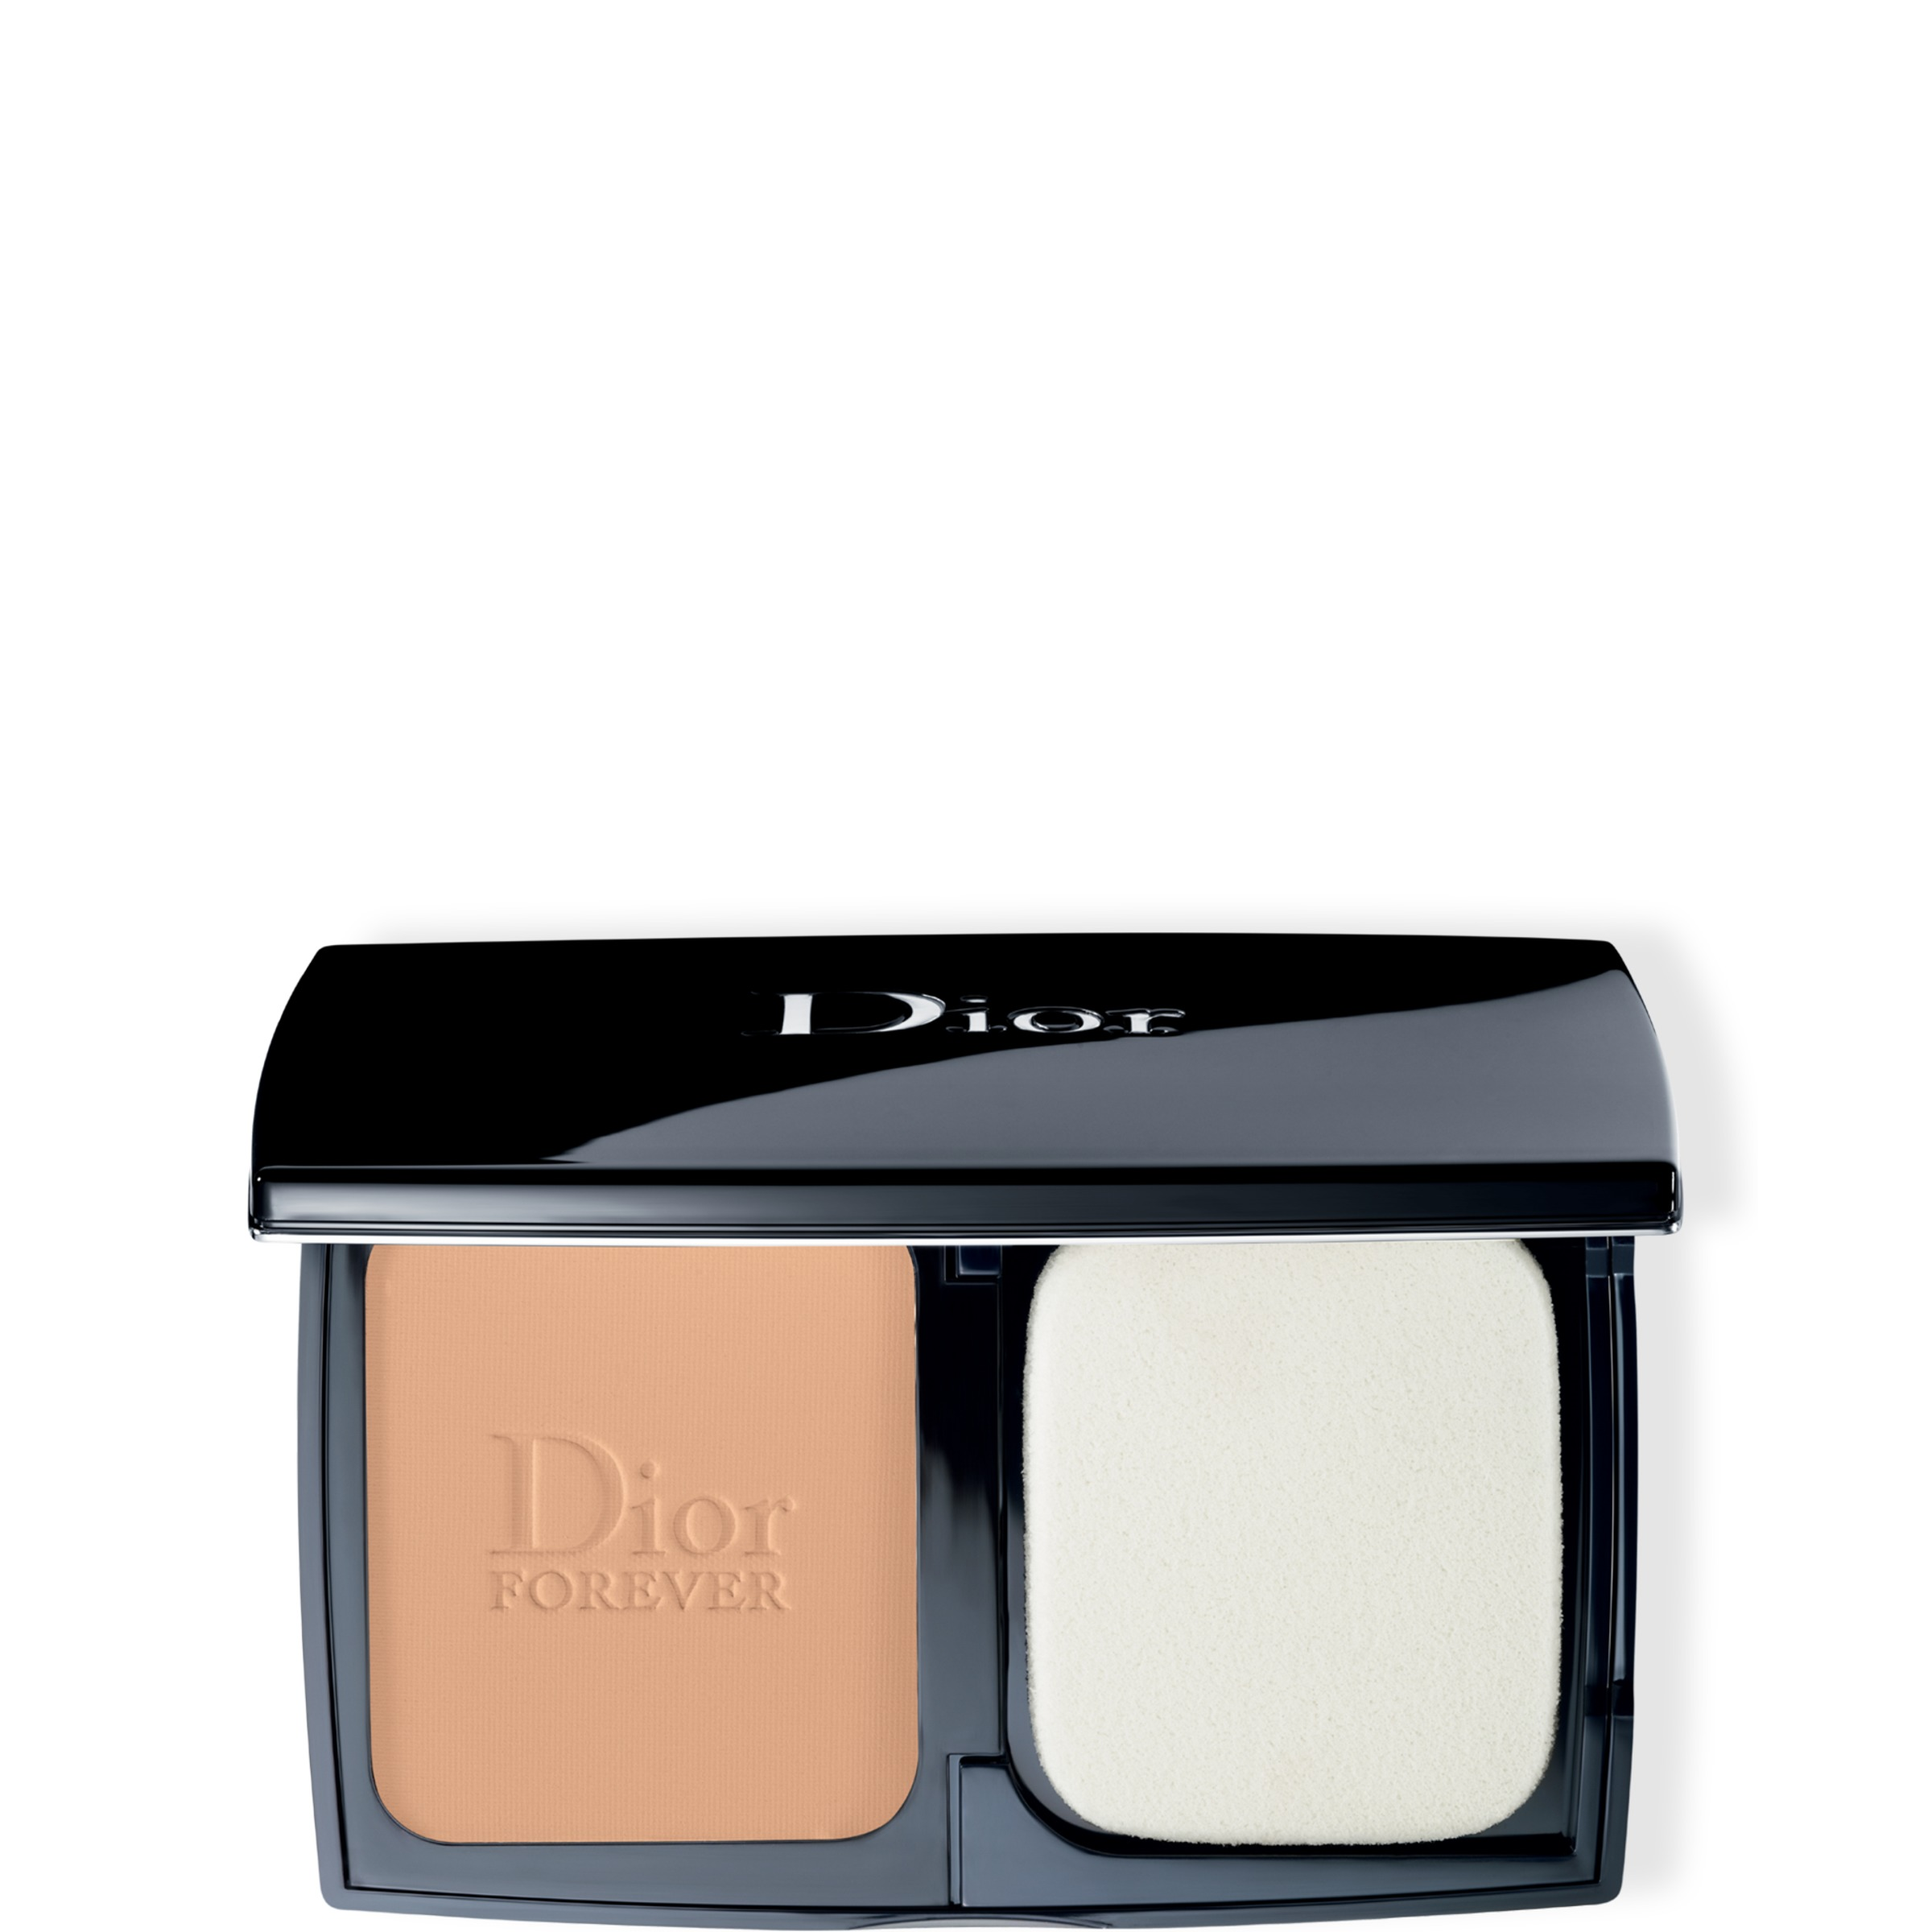 Diorskin Forever Foundation Compact 025 Soft Beige